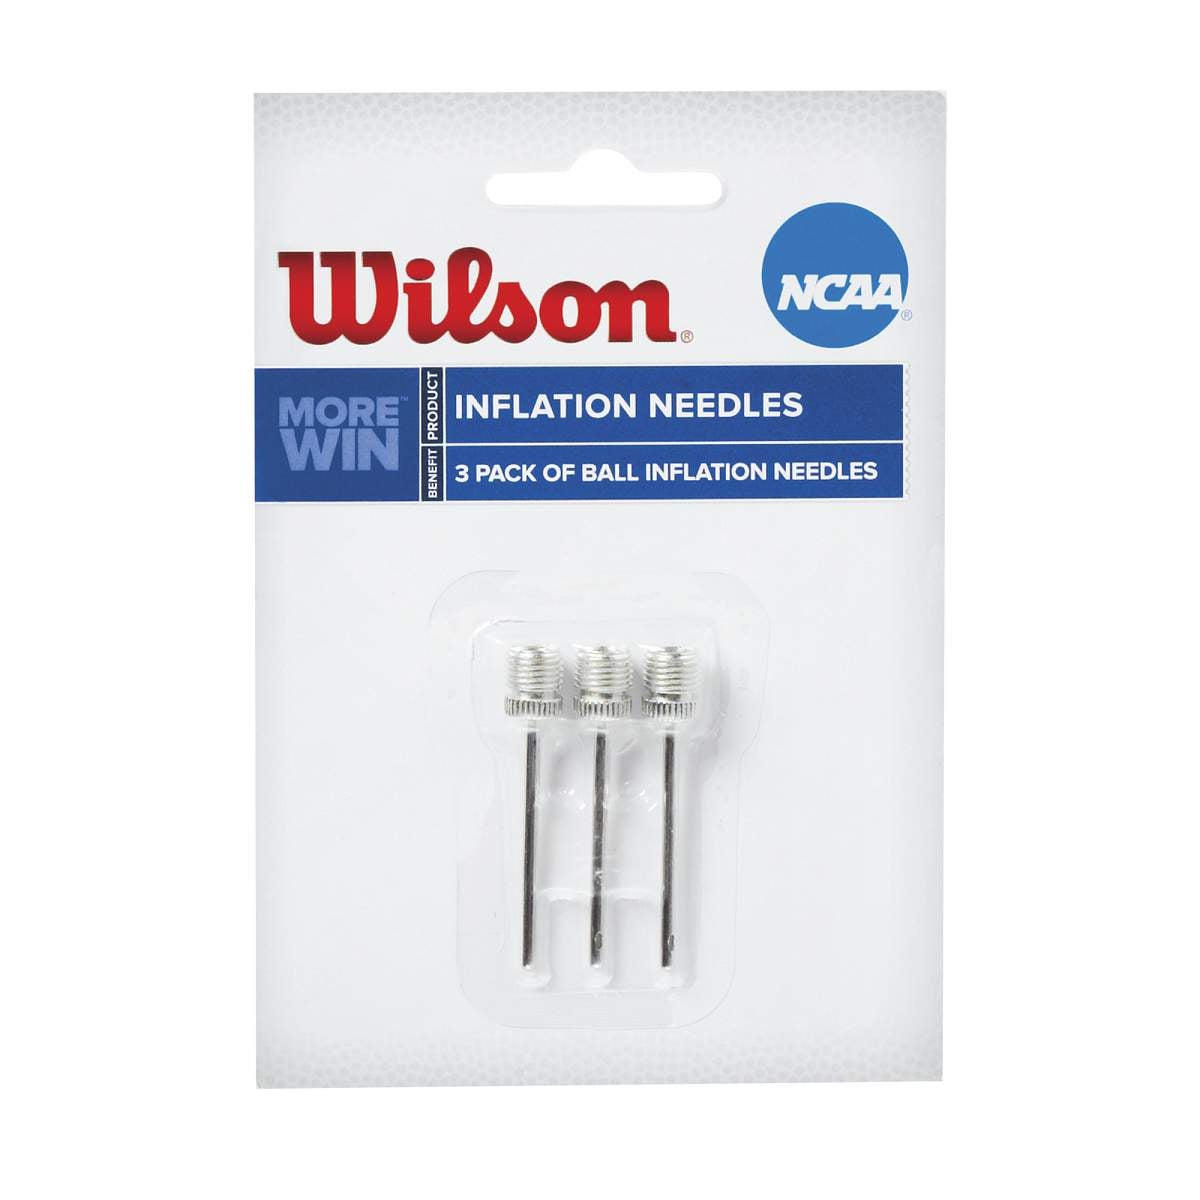 Inflation Needles - 3 Pack